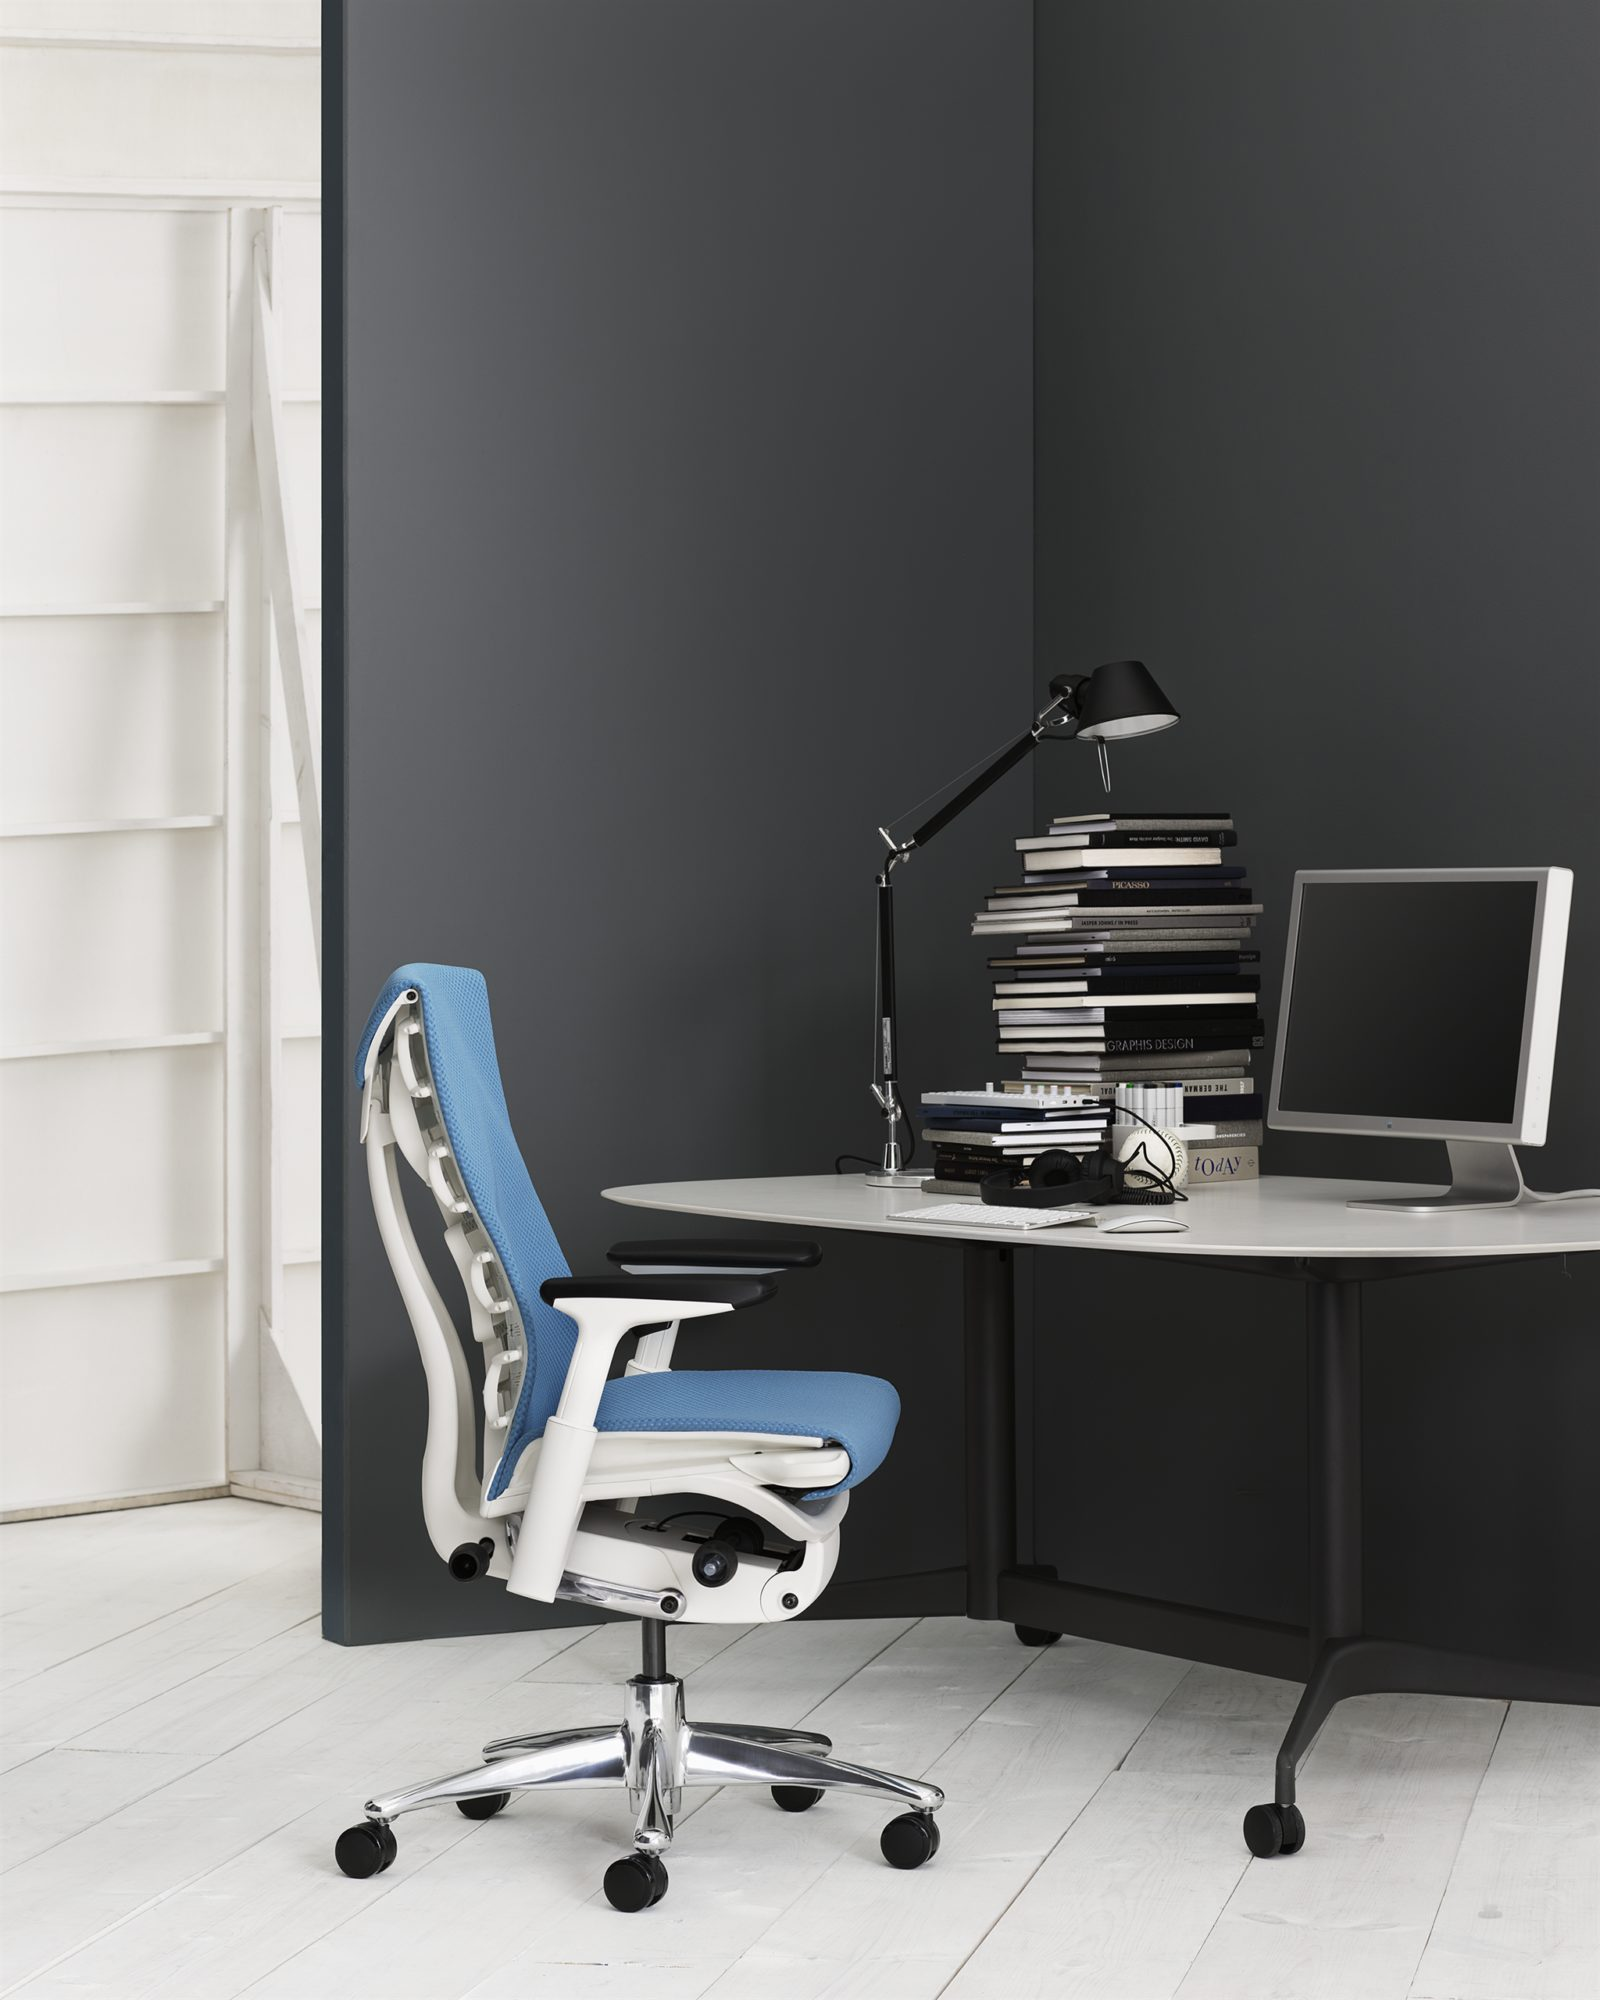 An image of a home office with a blue Embody chair.